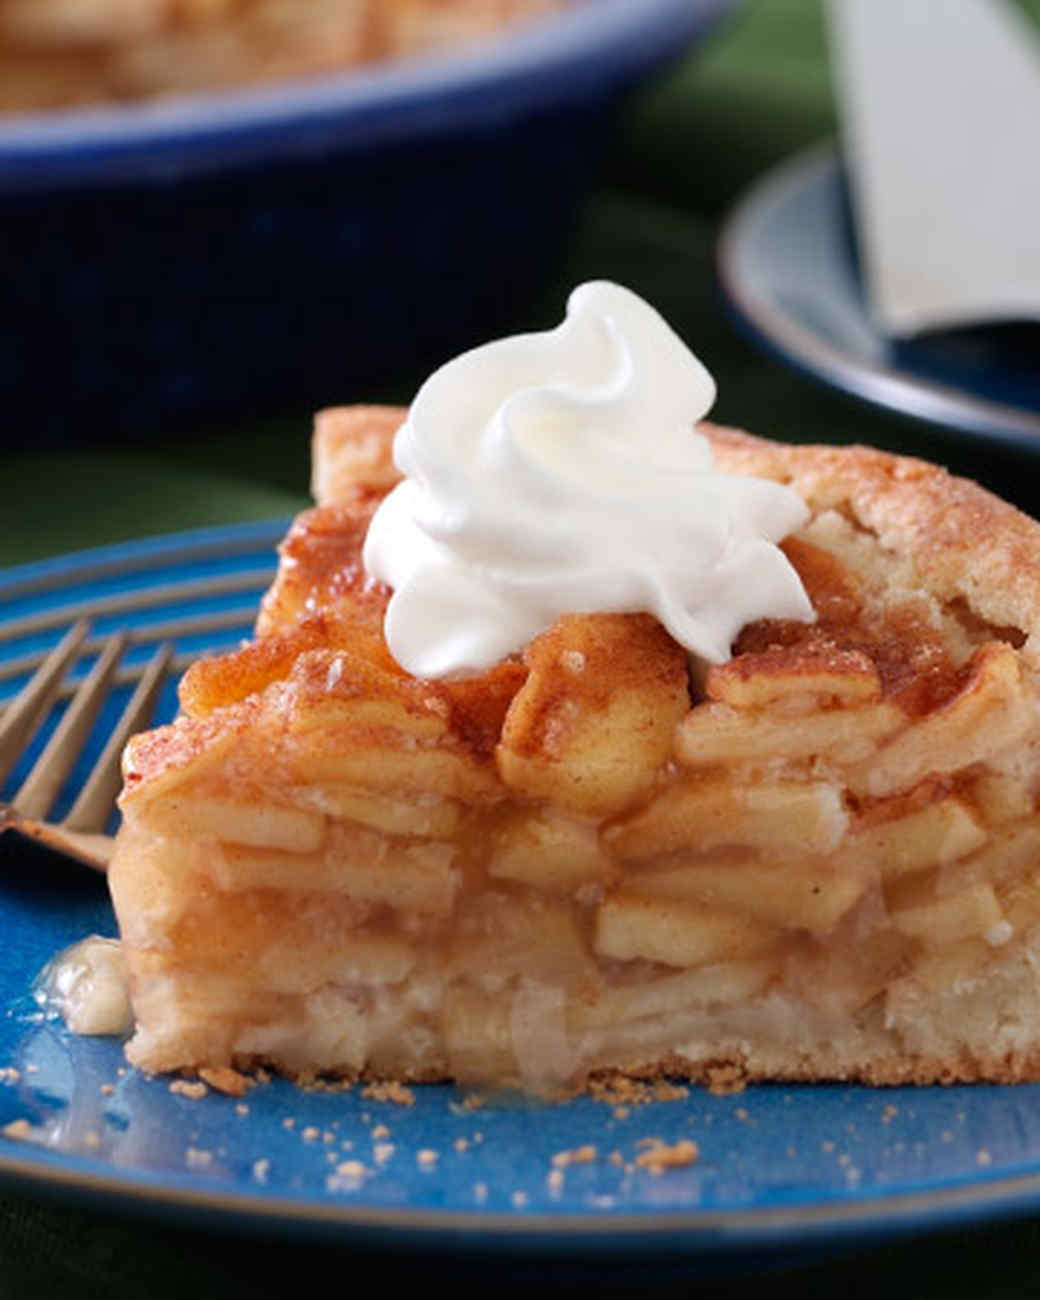 reddiwip_cinnamon_apple_tart.jpg